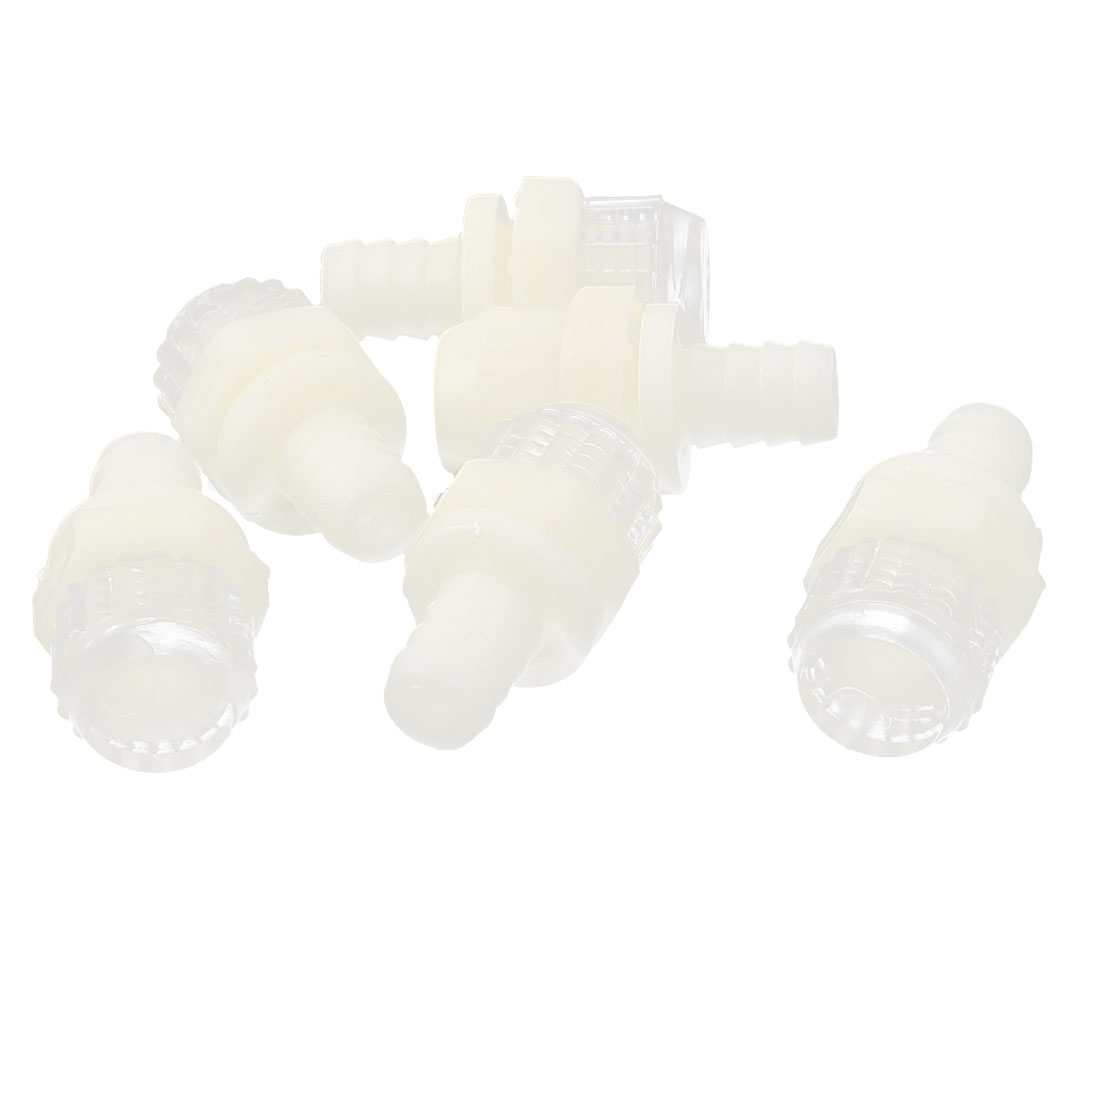 "6Pcs Plastic 9mm 0.35"" Barb Connector Screw End Cap Drain Valve for Water Dispenser"